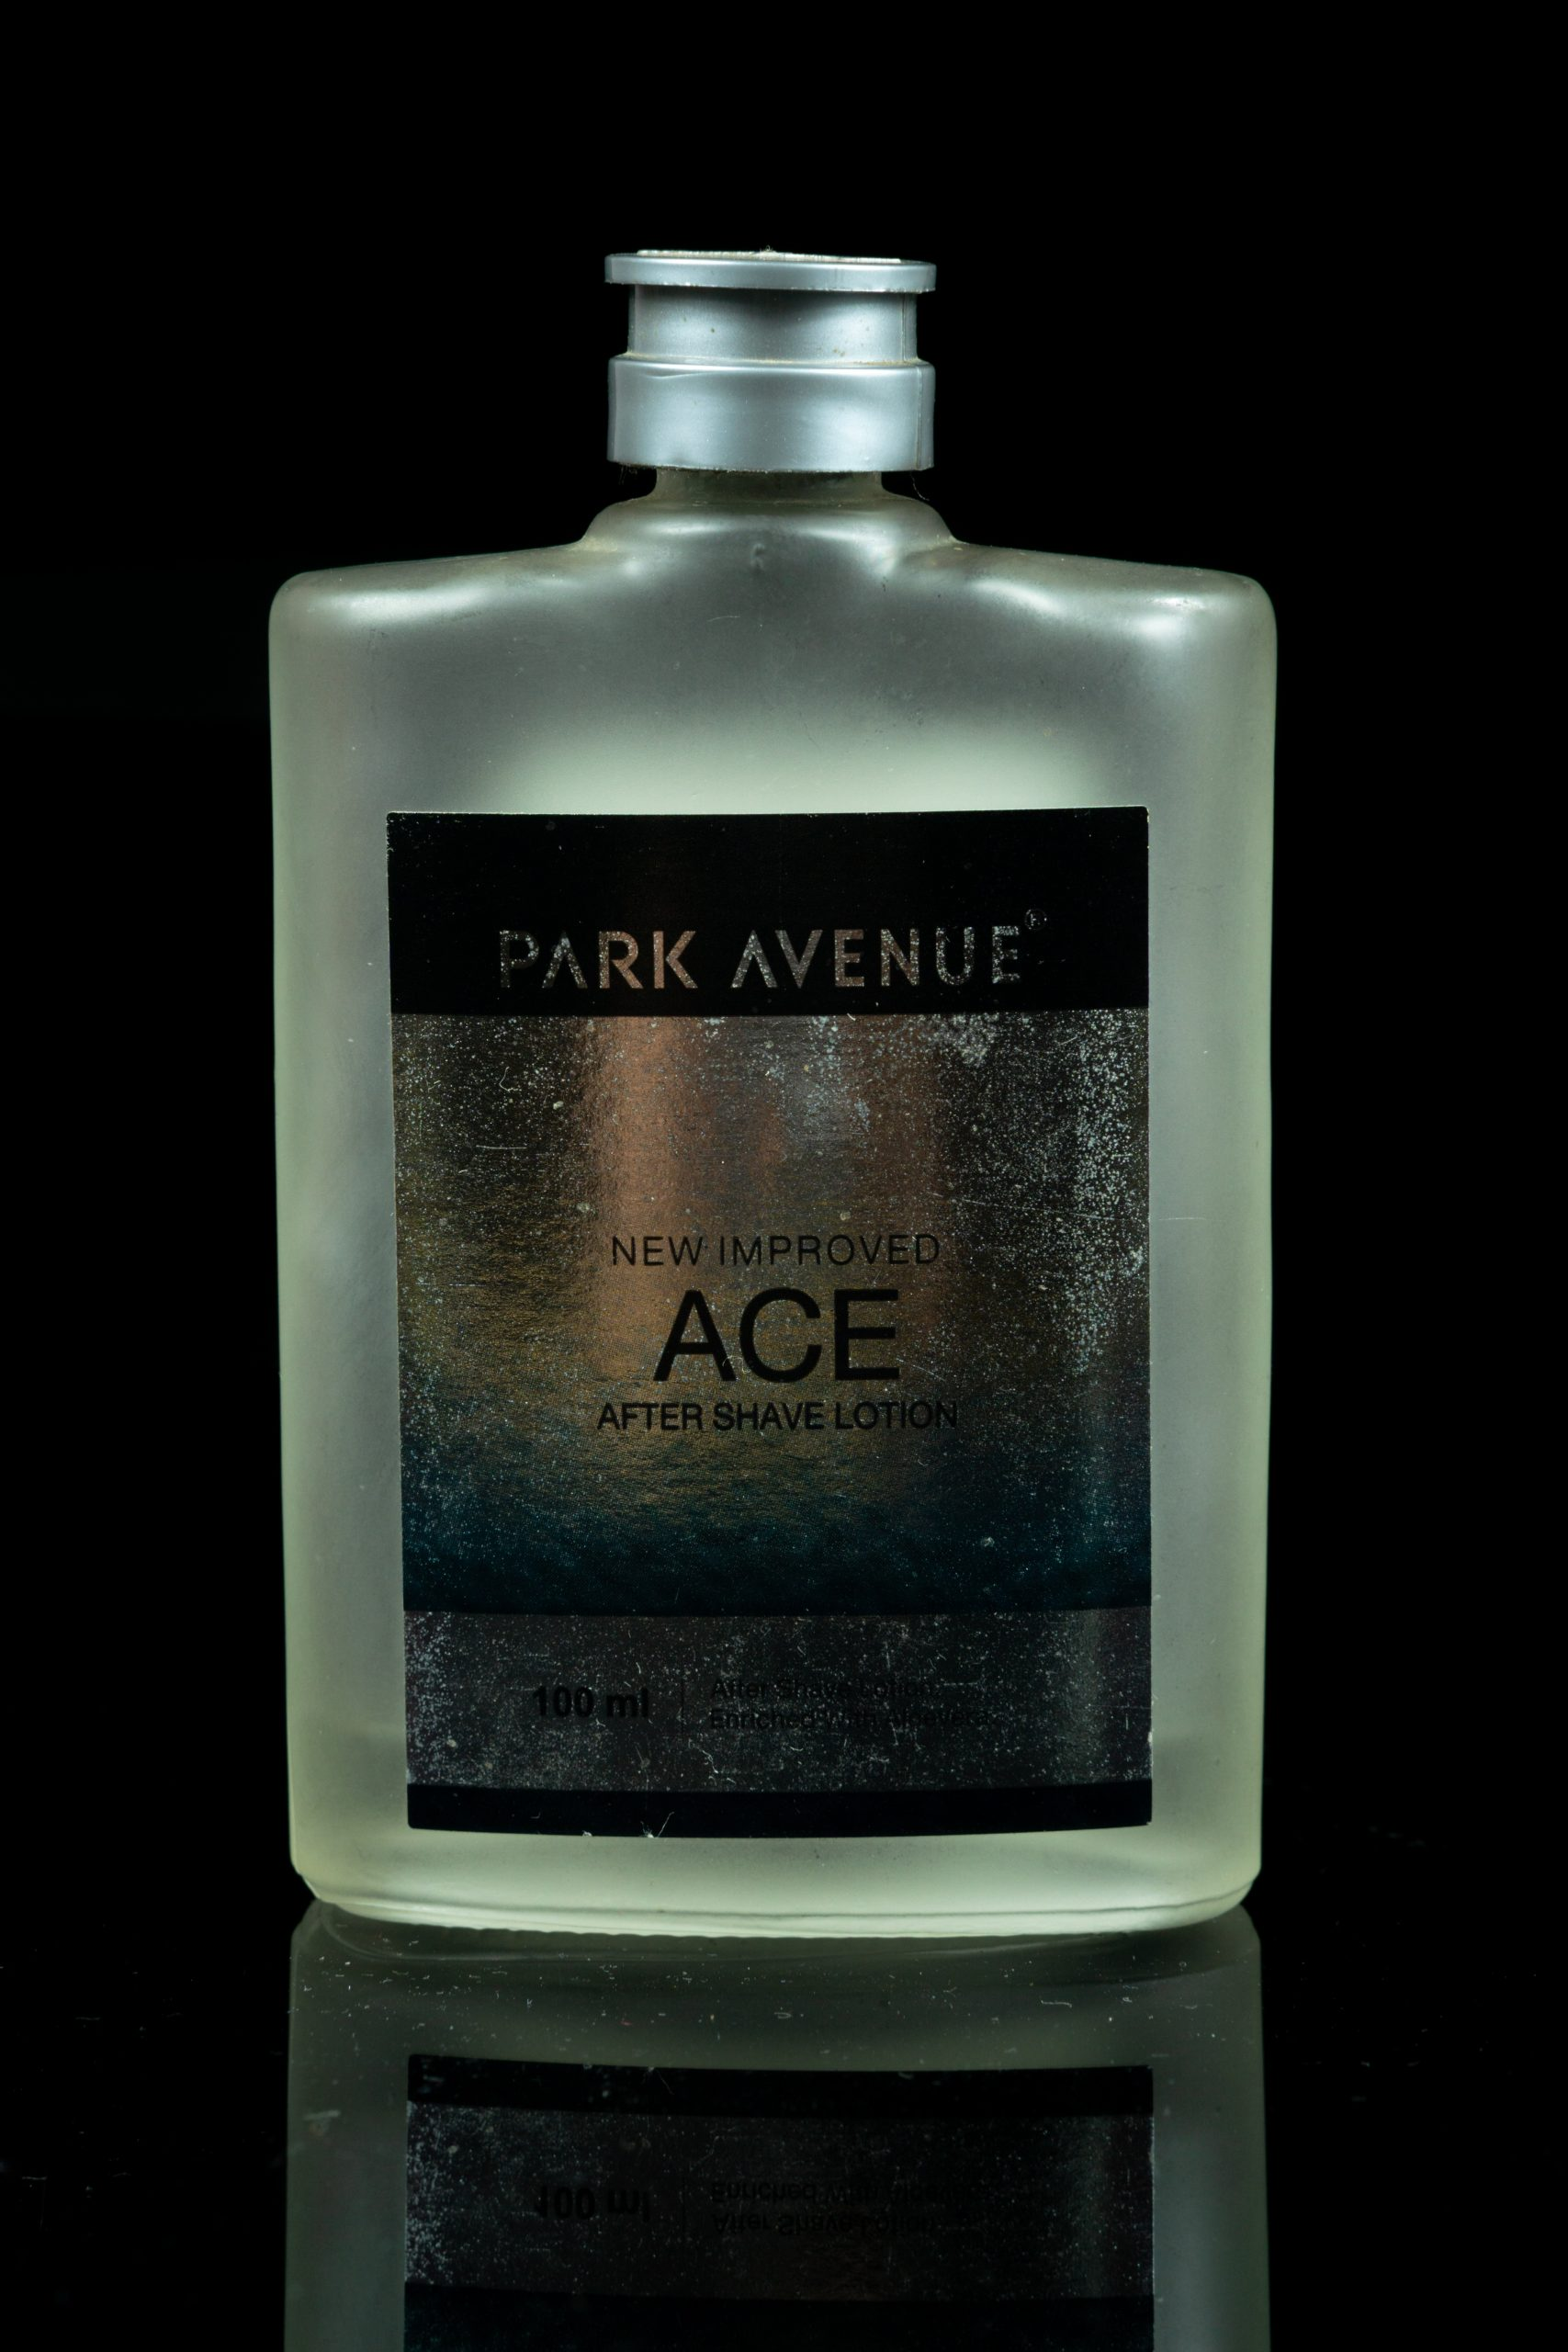 An after shave lotion bottle